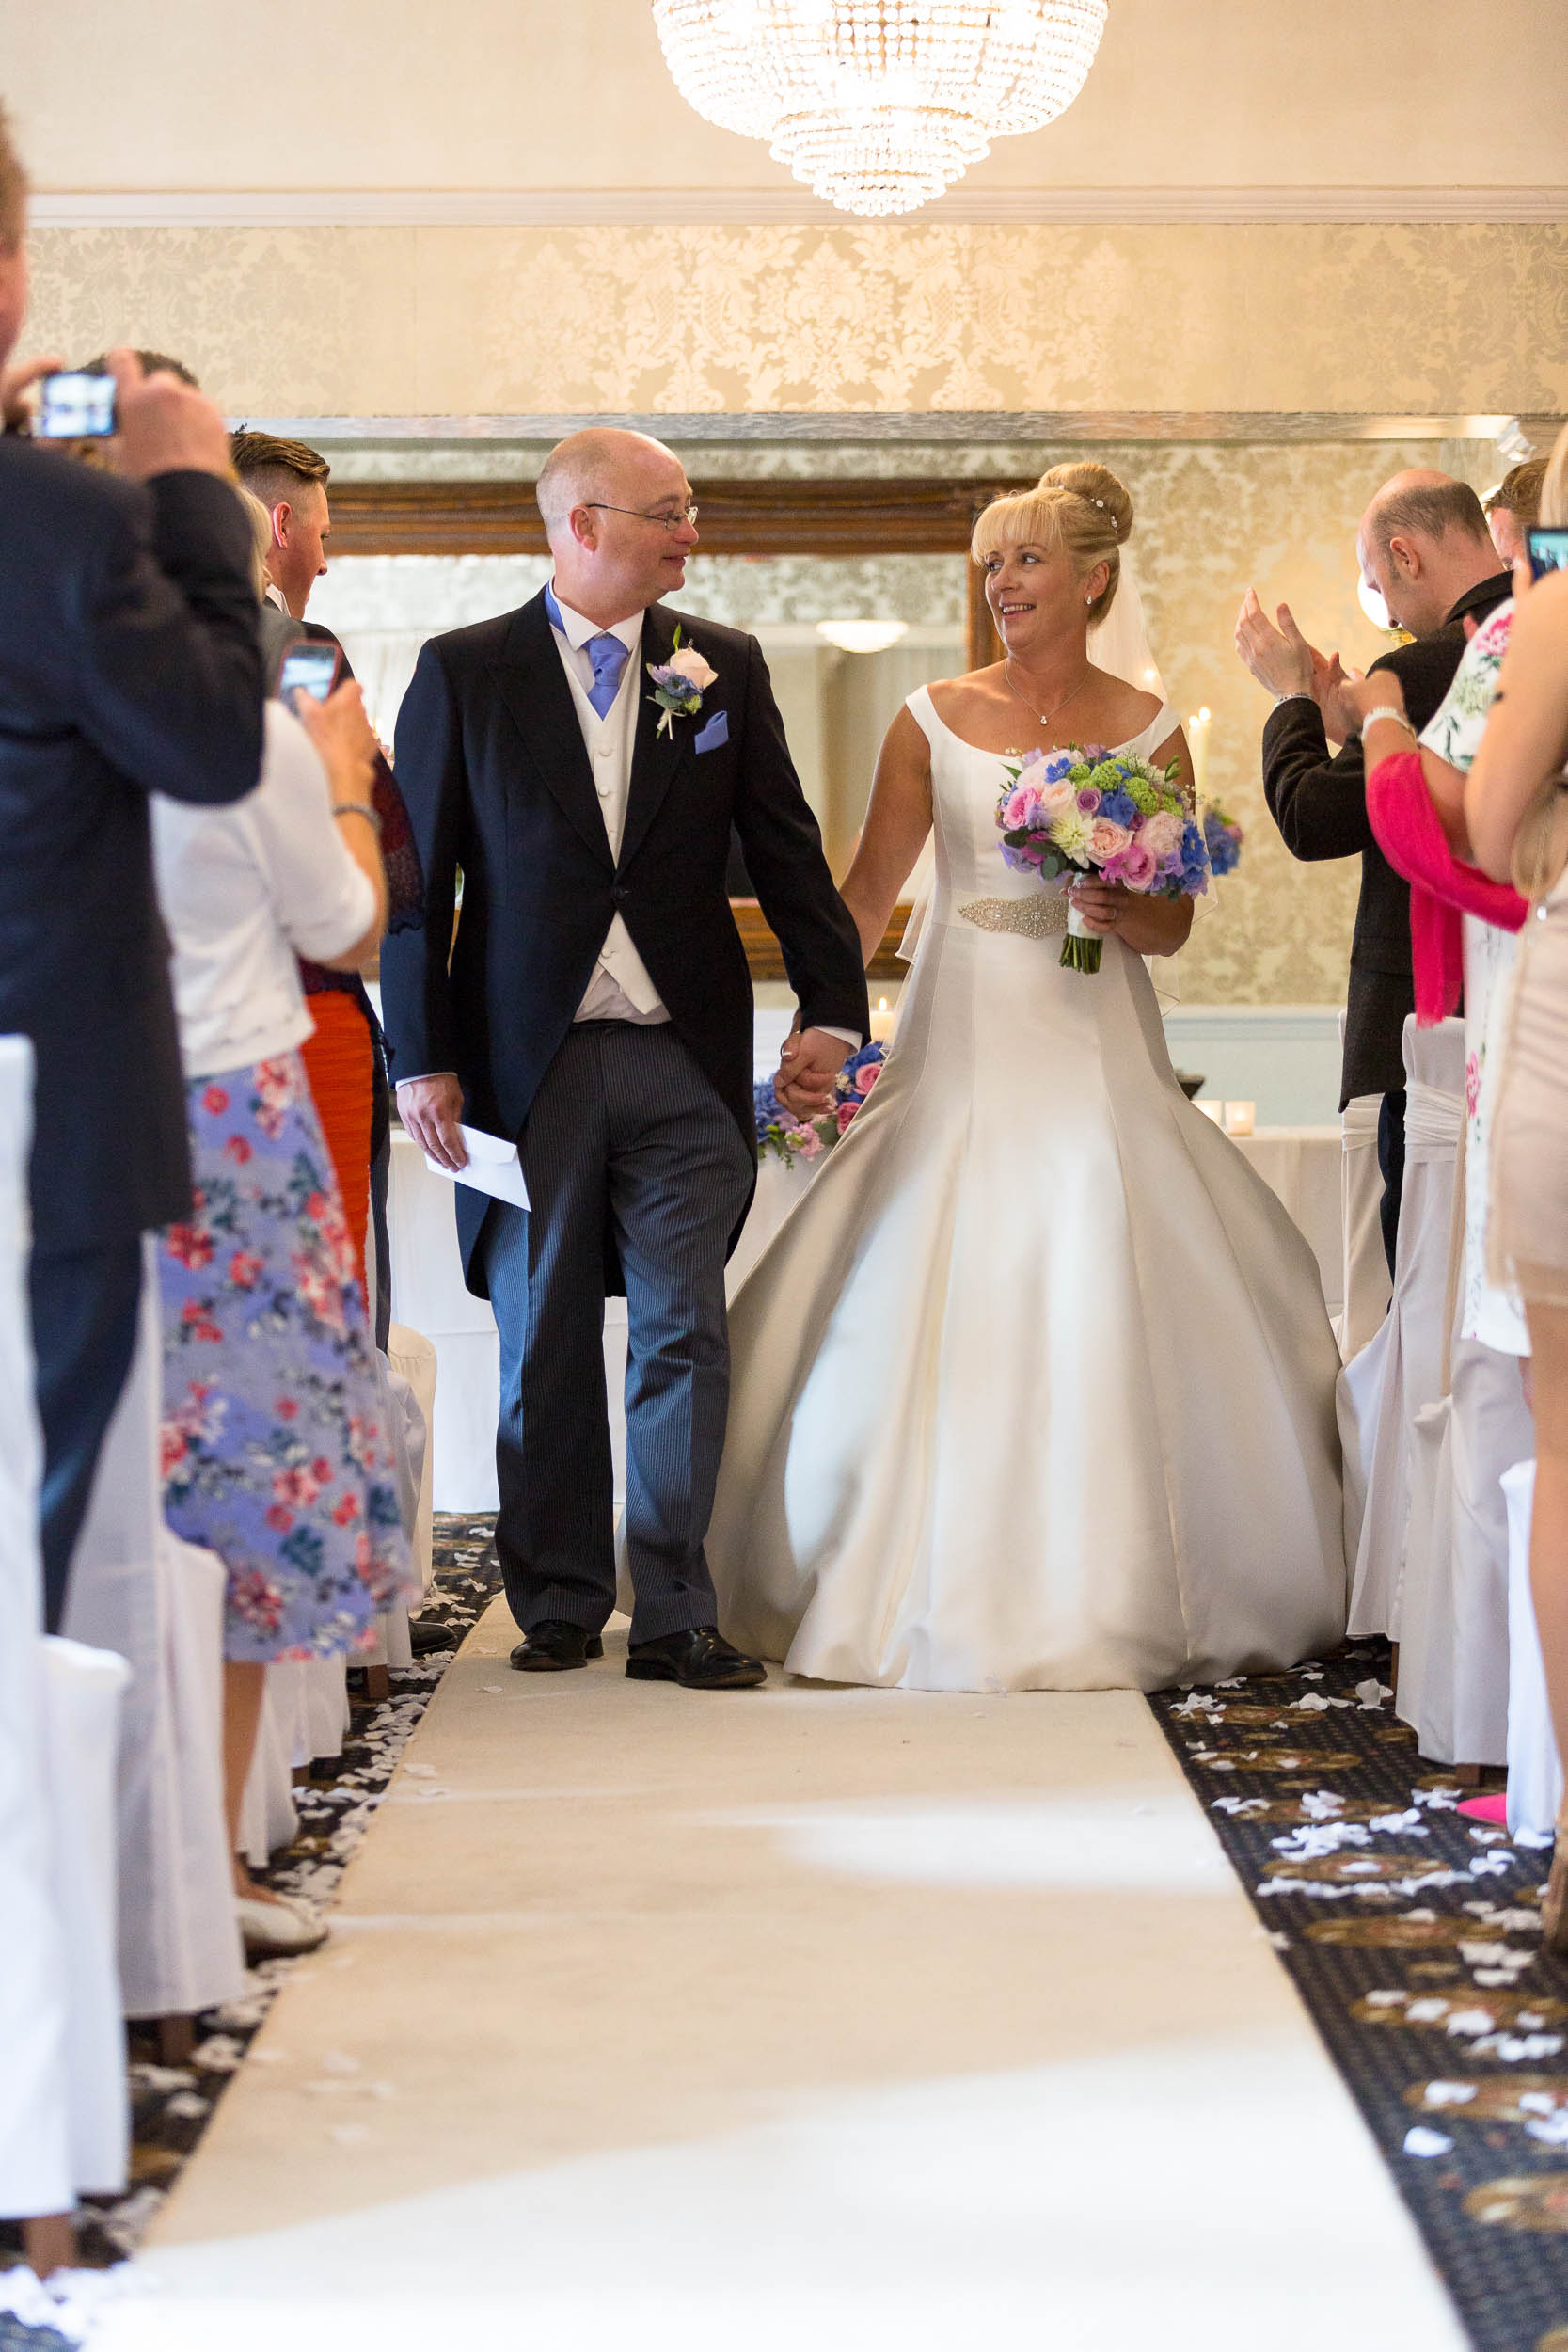 Kirsty & Kevin-Wedding-Bartle Hal-Lancashire-photo-212.jpg